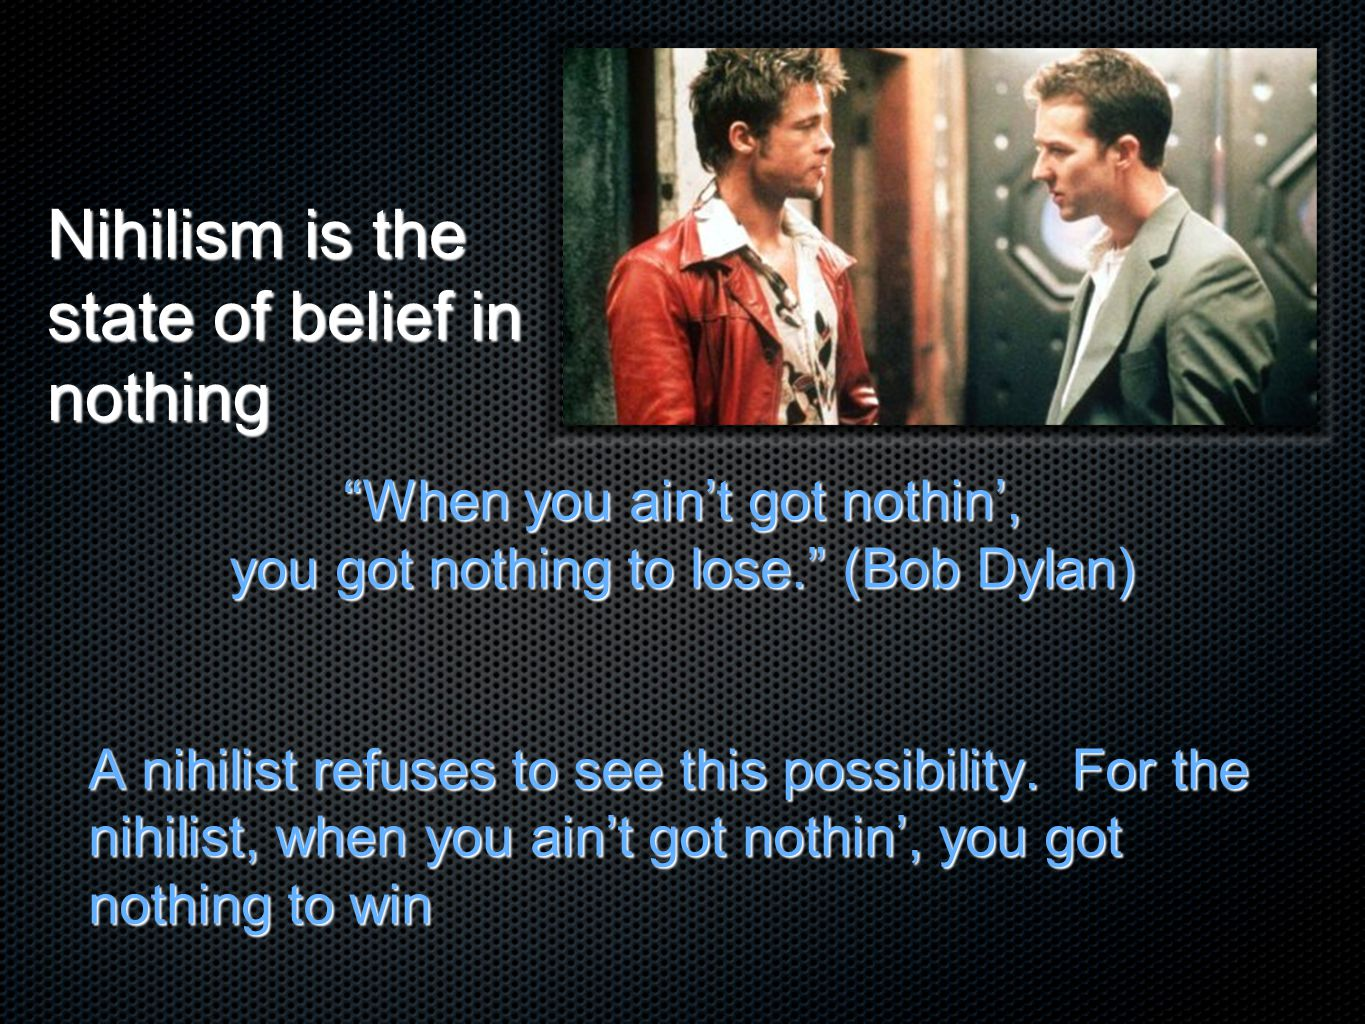 Nihilism is the state of belief in nothing